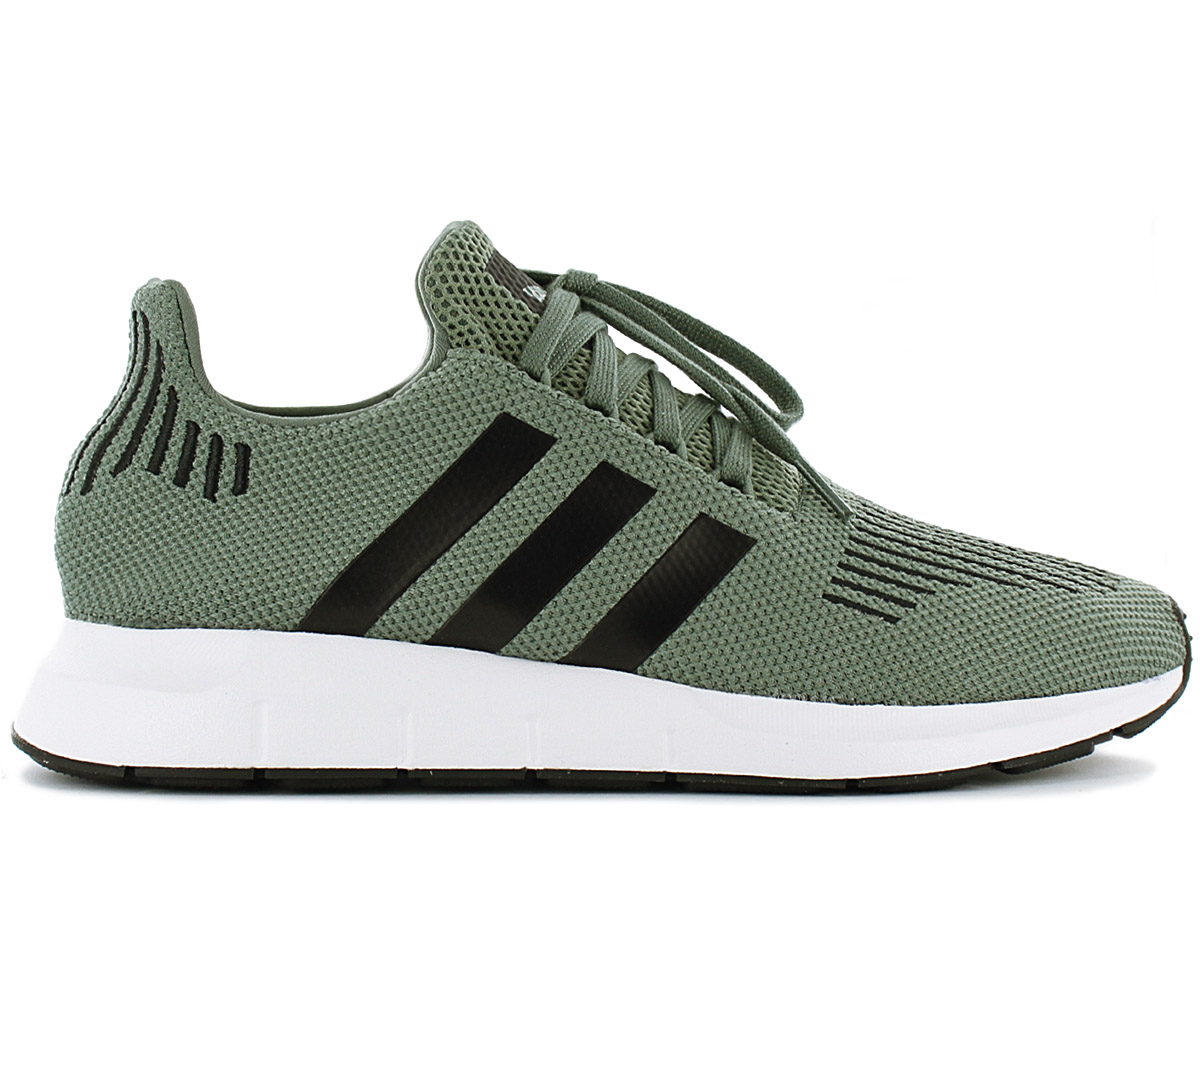 a2a274163 Adidas Originals Swift Run Men s Sneakers Shoes Cg4115 Green Gym ...